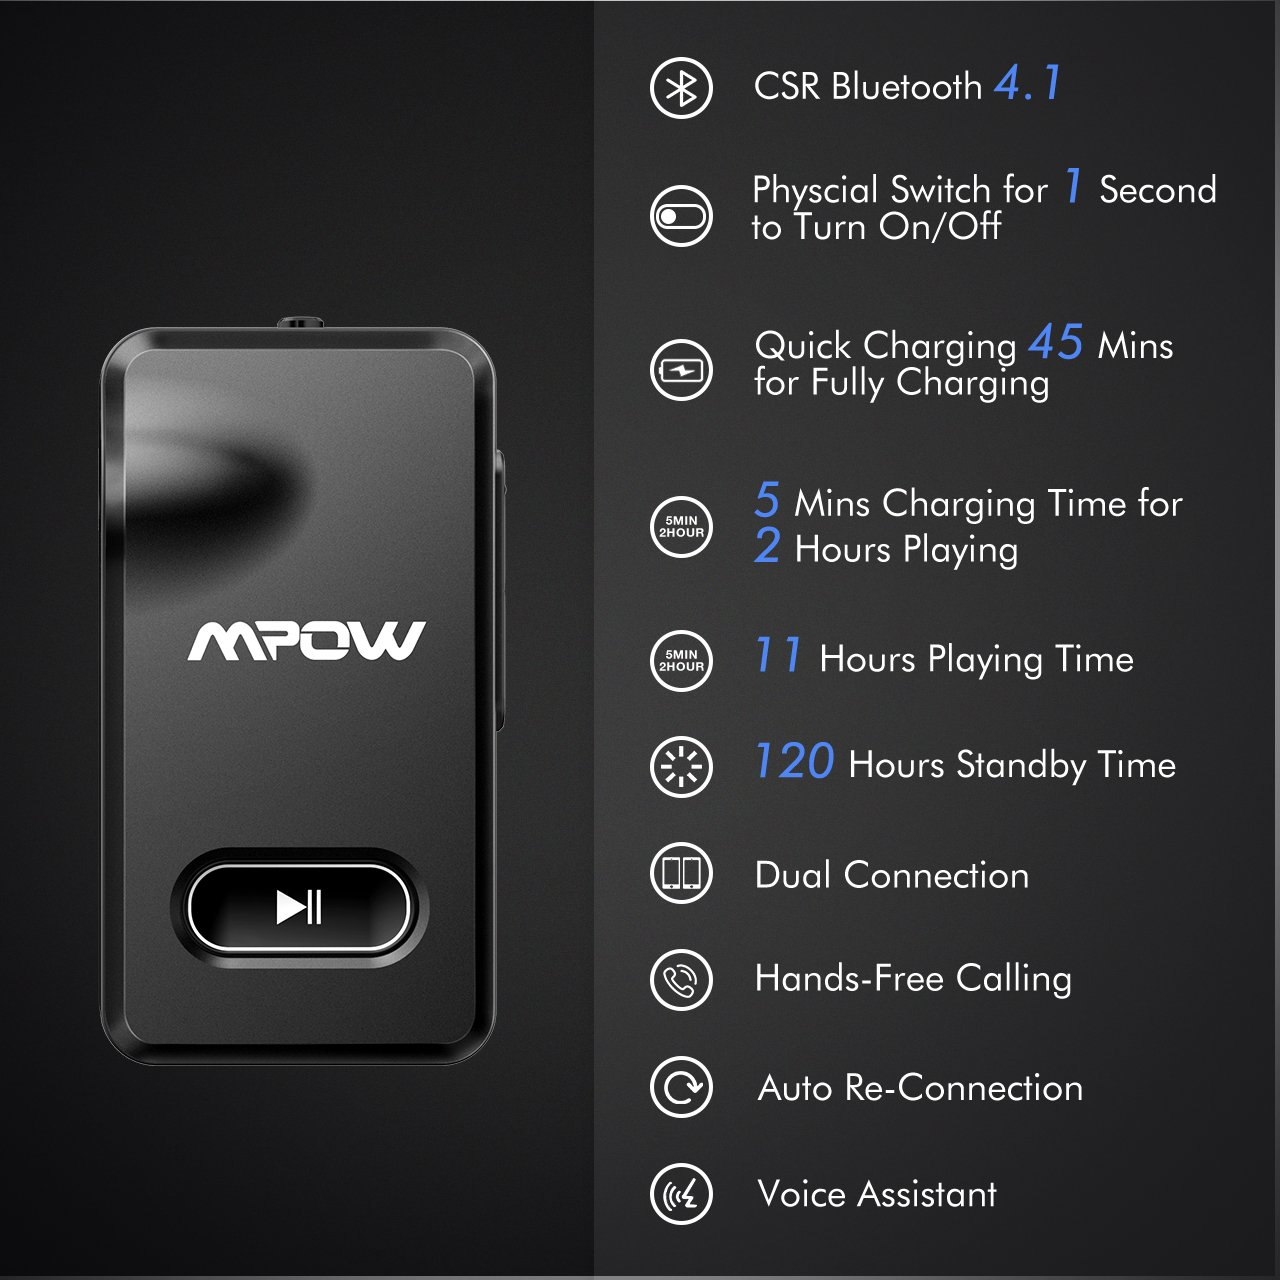 Mpow Aux Blueooth Adapter 3.5mm, Bluetooth Receiver w/Quick Charging 5-Min for 2 Hours Hands-free Calling, Wireless Bluetooth Car Adapter with One-Key On/Off Button, Bluetooth Car Kits for Hi-Fi Music by Mpow (Image #2)